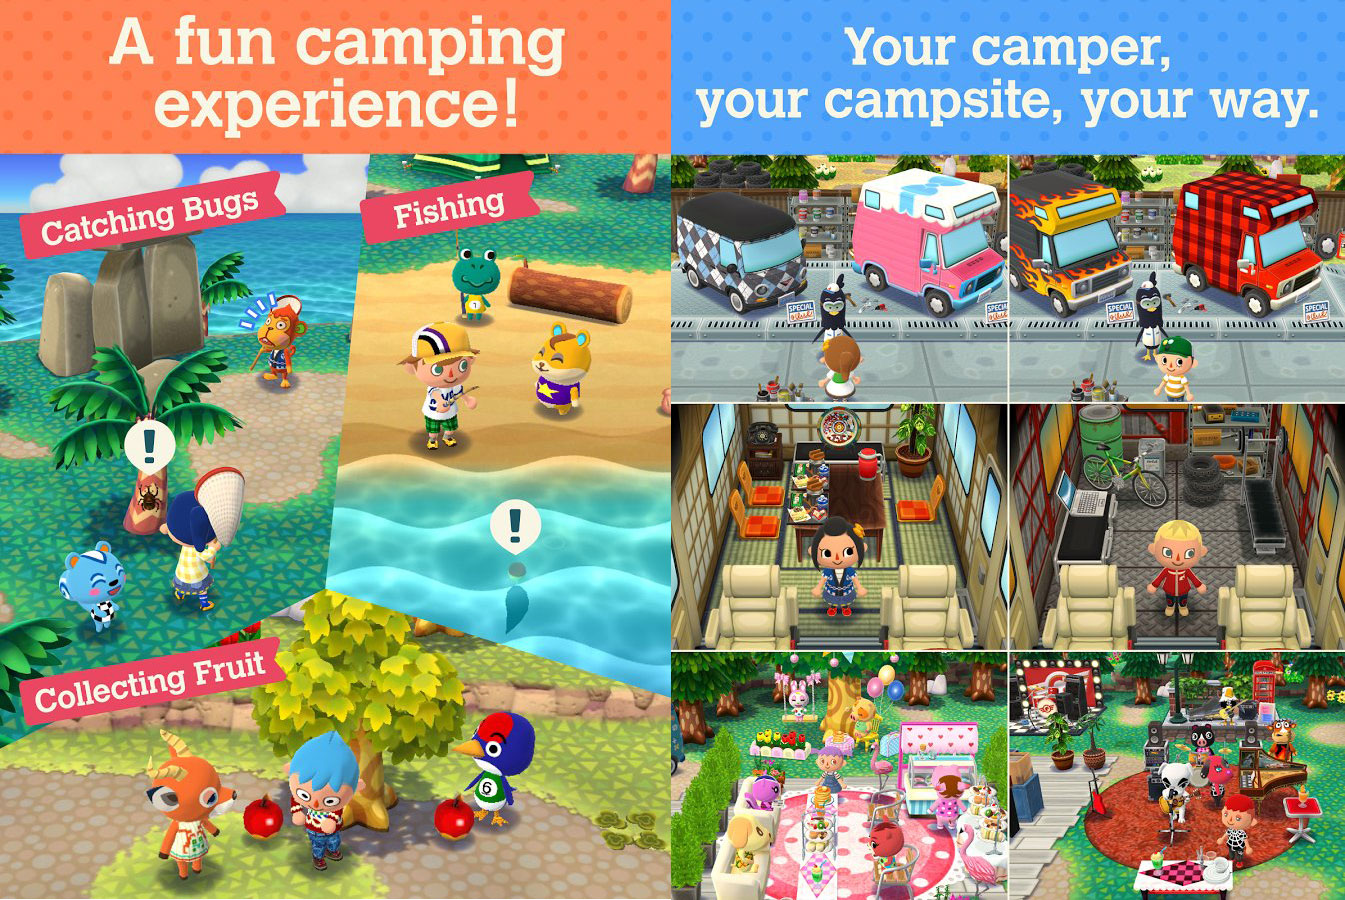 Animal Crossing Pocket Camp se lanzará el 22 de noviembre a nivel mundial